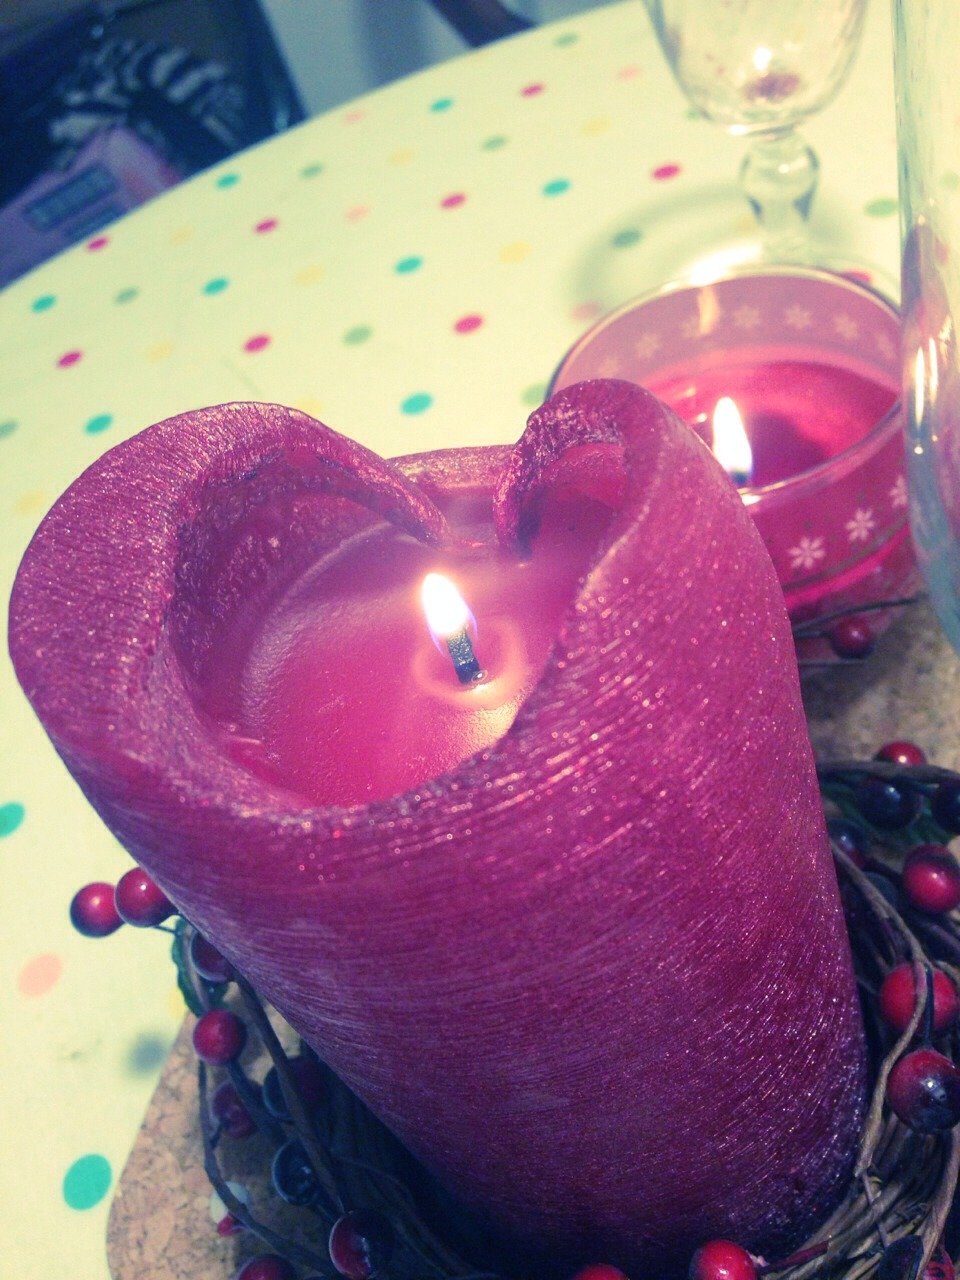 If your candle is misshapen, and you want or reshape it yourself, I have an easy little tip for you:)